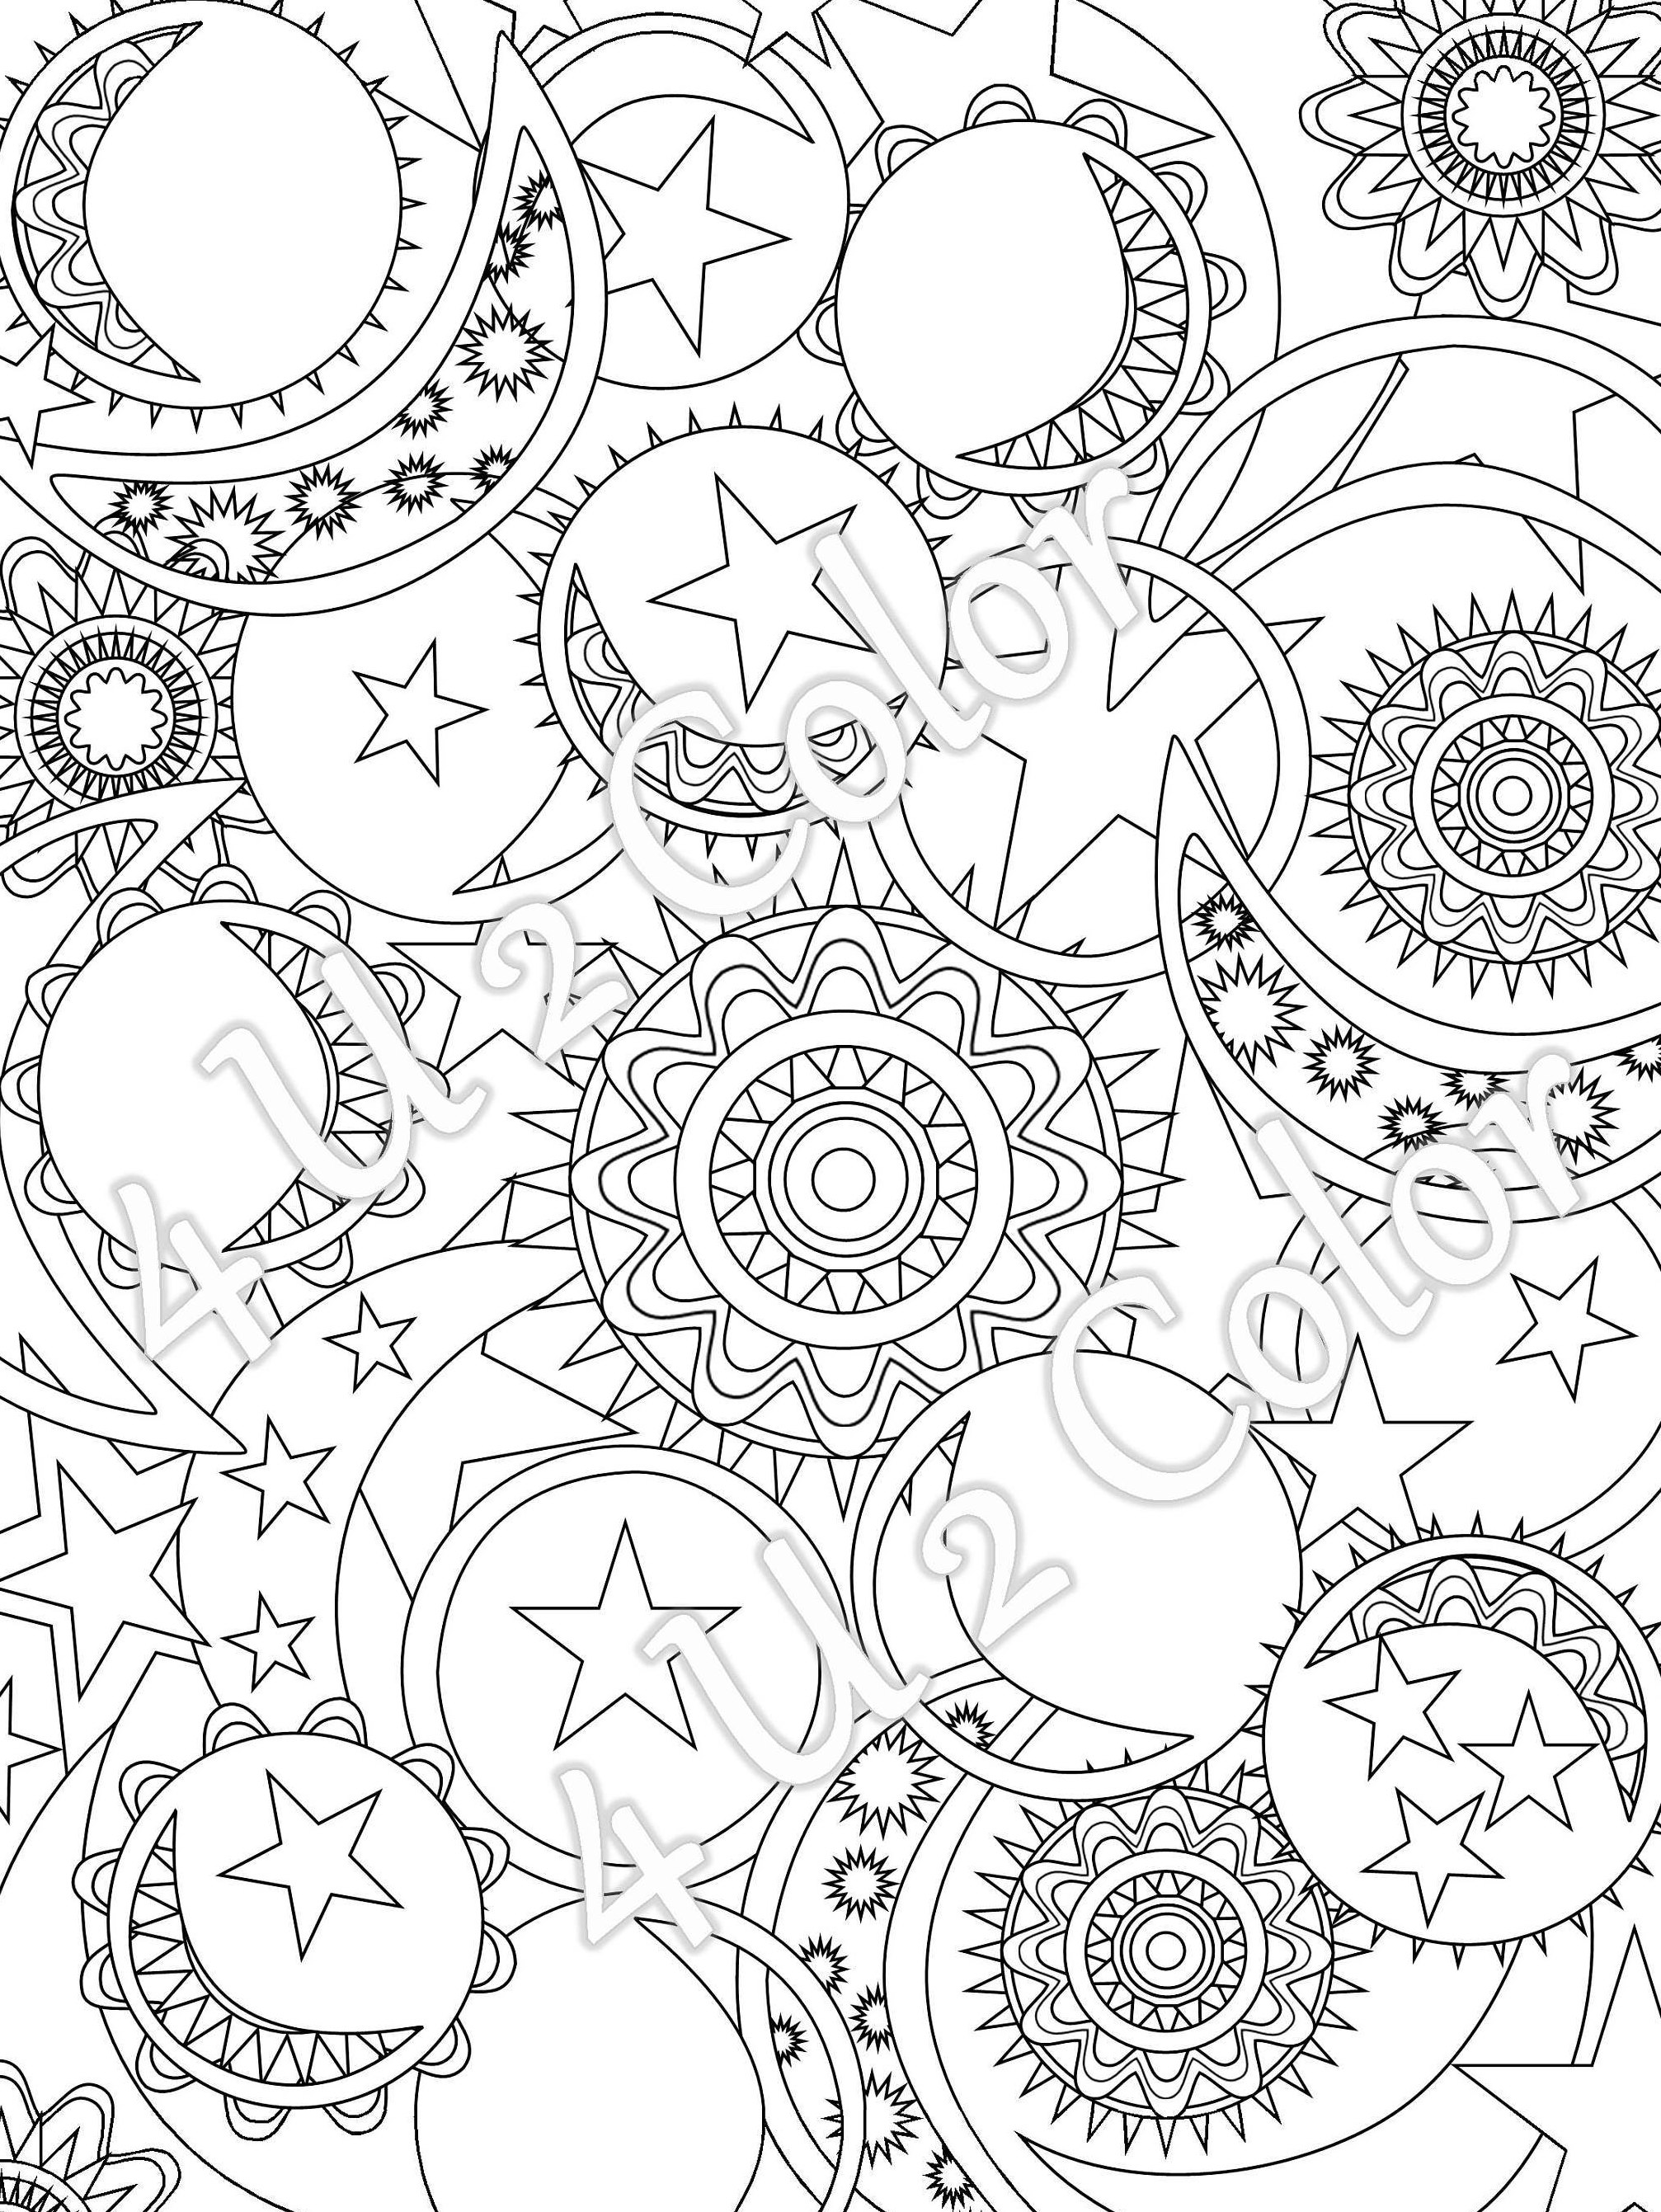 coloring page of stars.  zoom Sun Moon Stars 1 coloring page sun moon stars